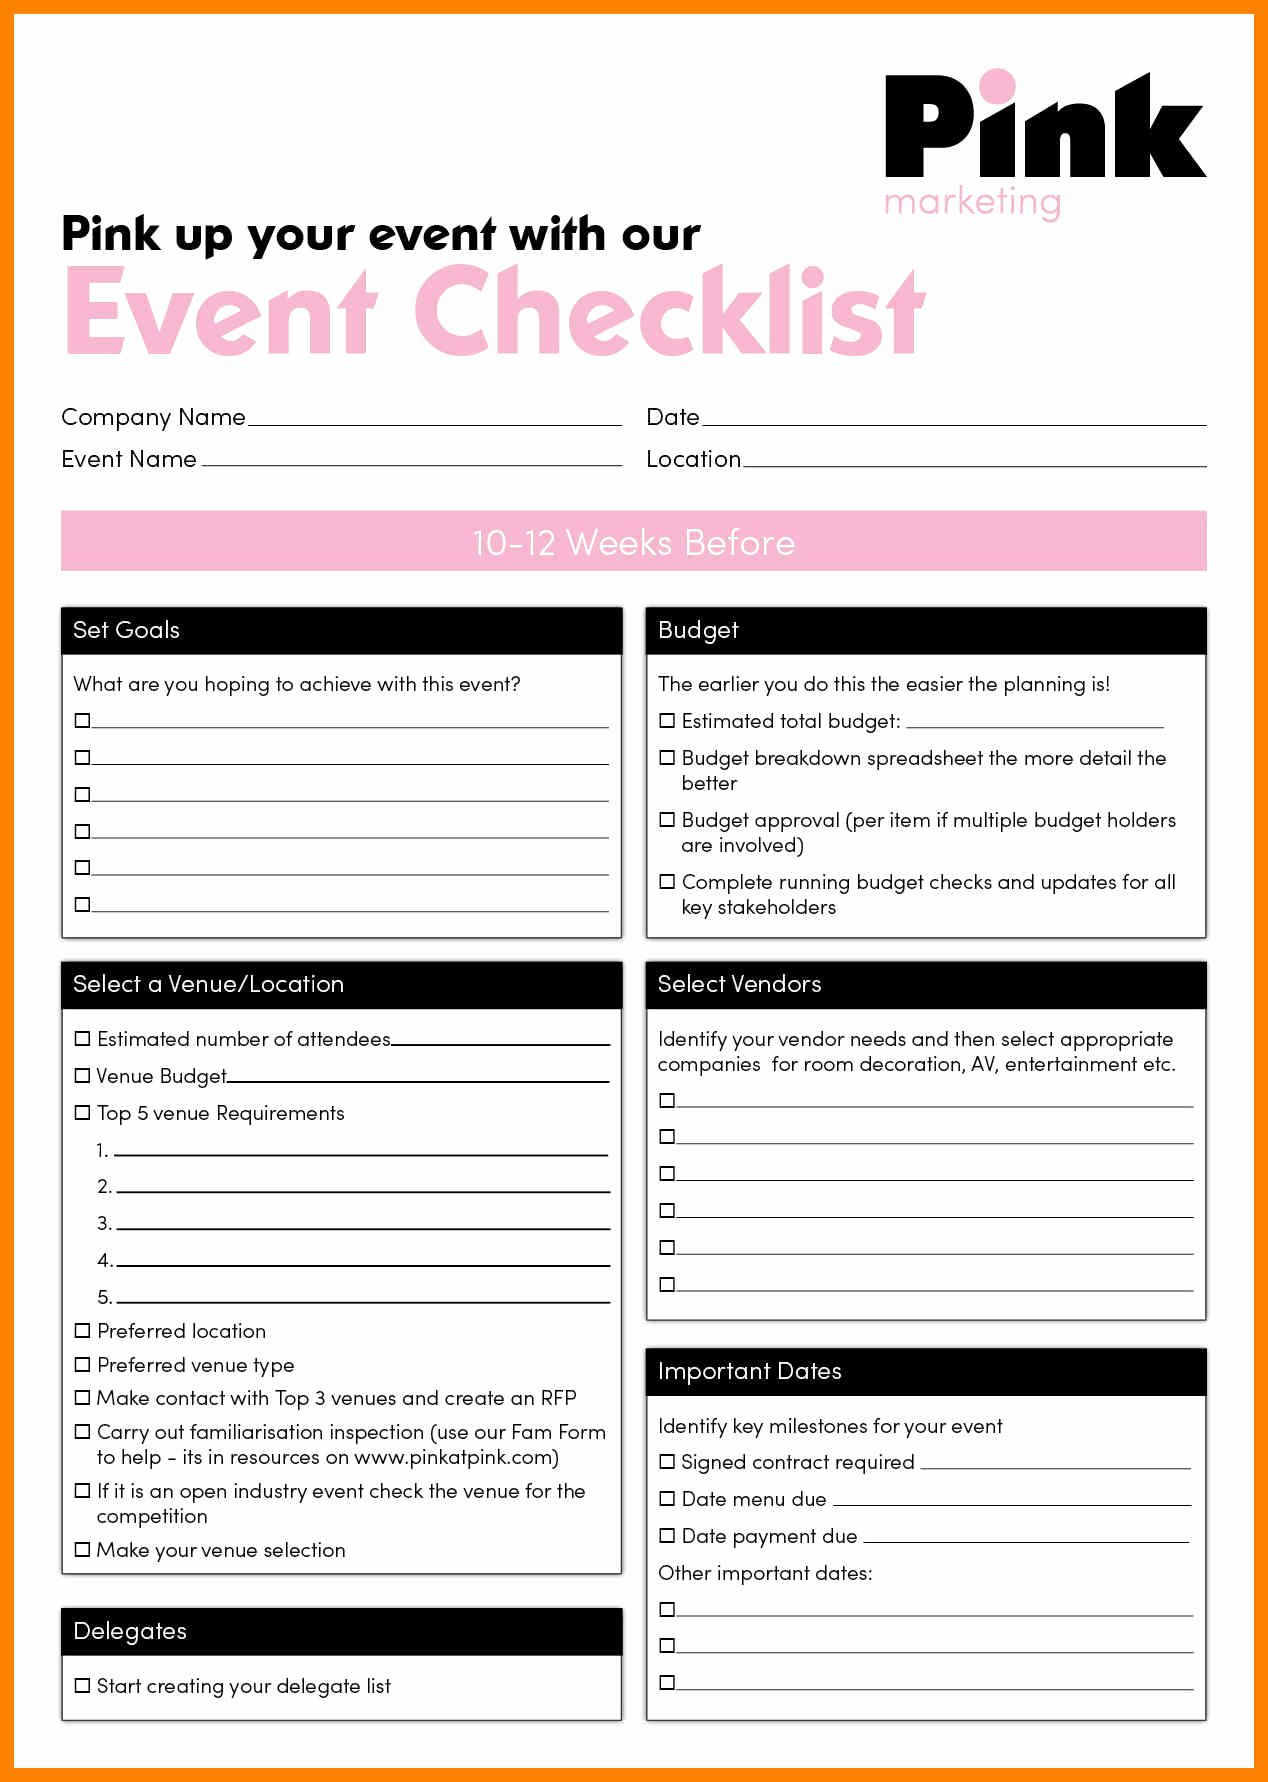 Corporate event Planning Checklist Template Unique event Checklist event Planning Checklist event Planning